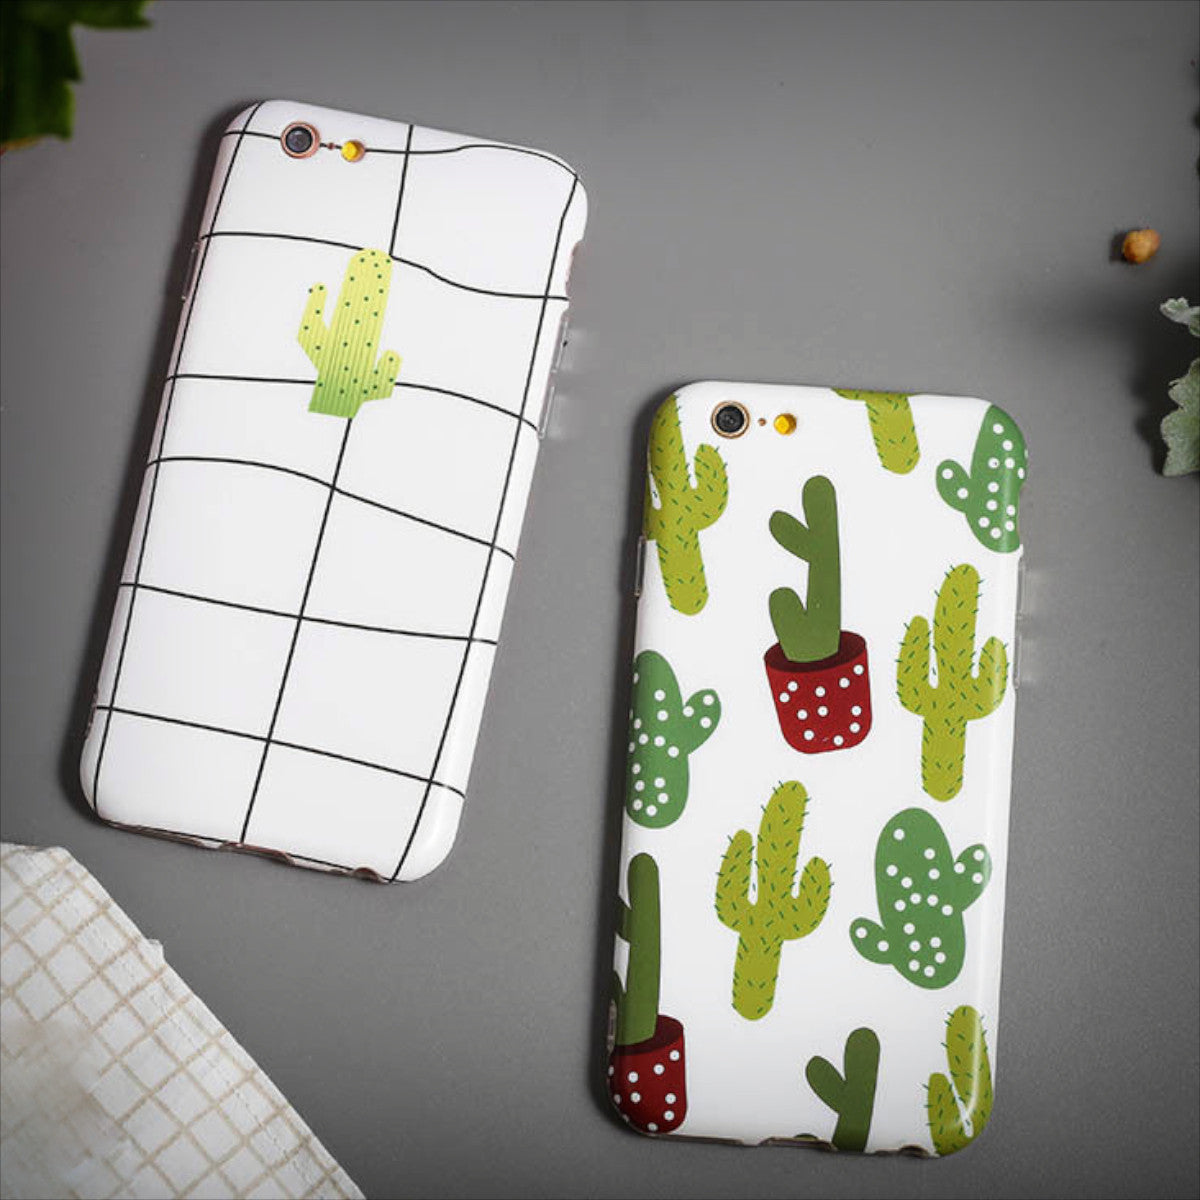 Cactus iPhone Case (2 Designs) - Ice Cream Cake